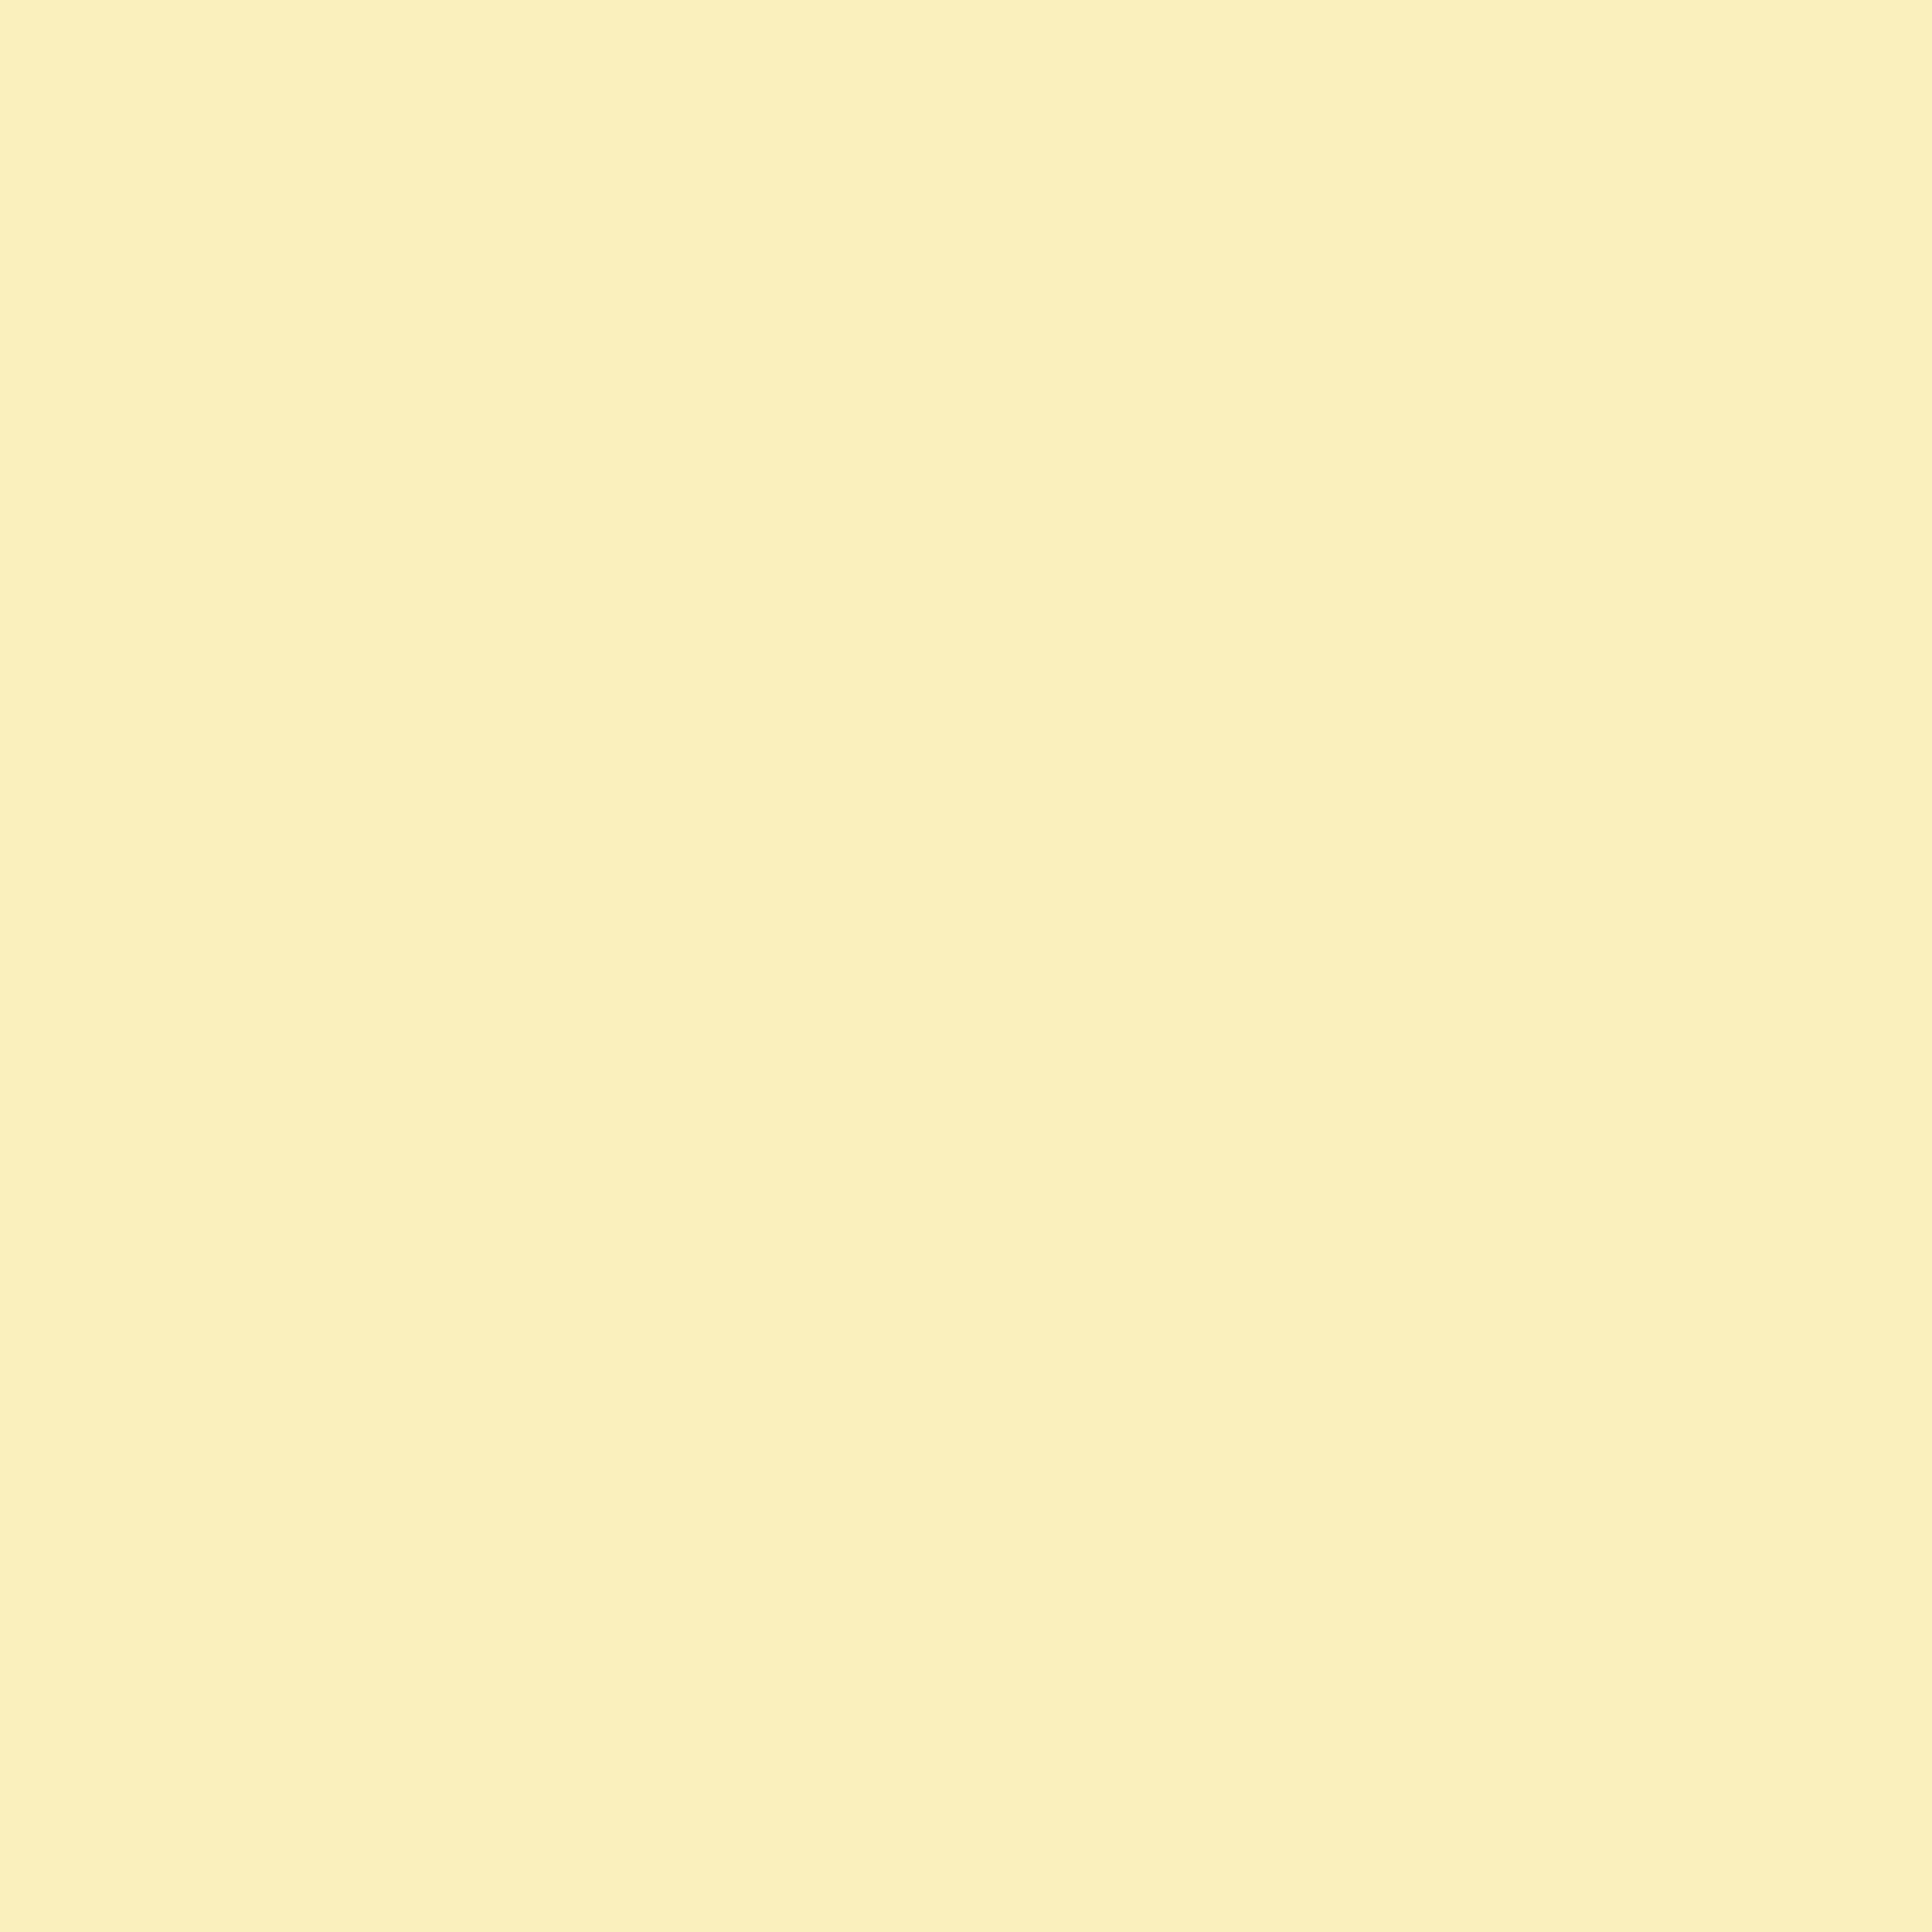 2732x2732 Blond Solid Color Background